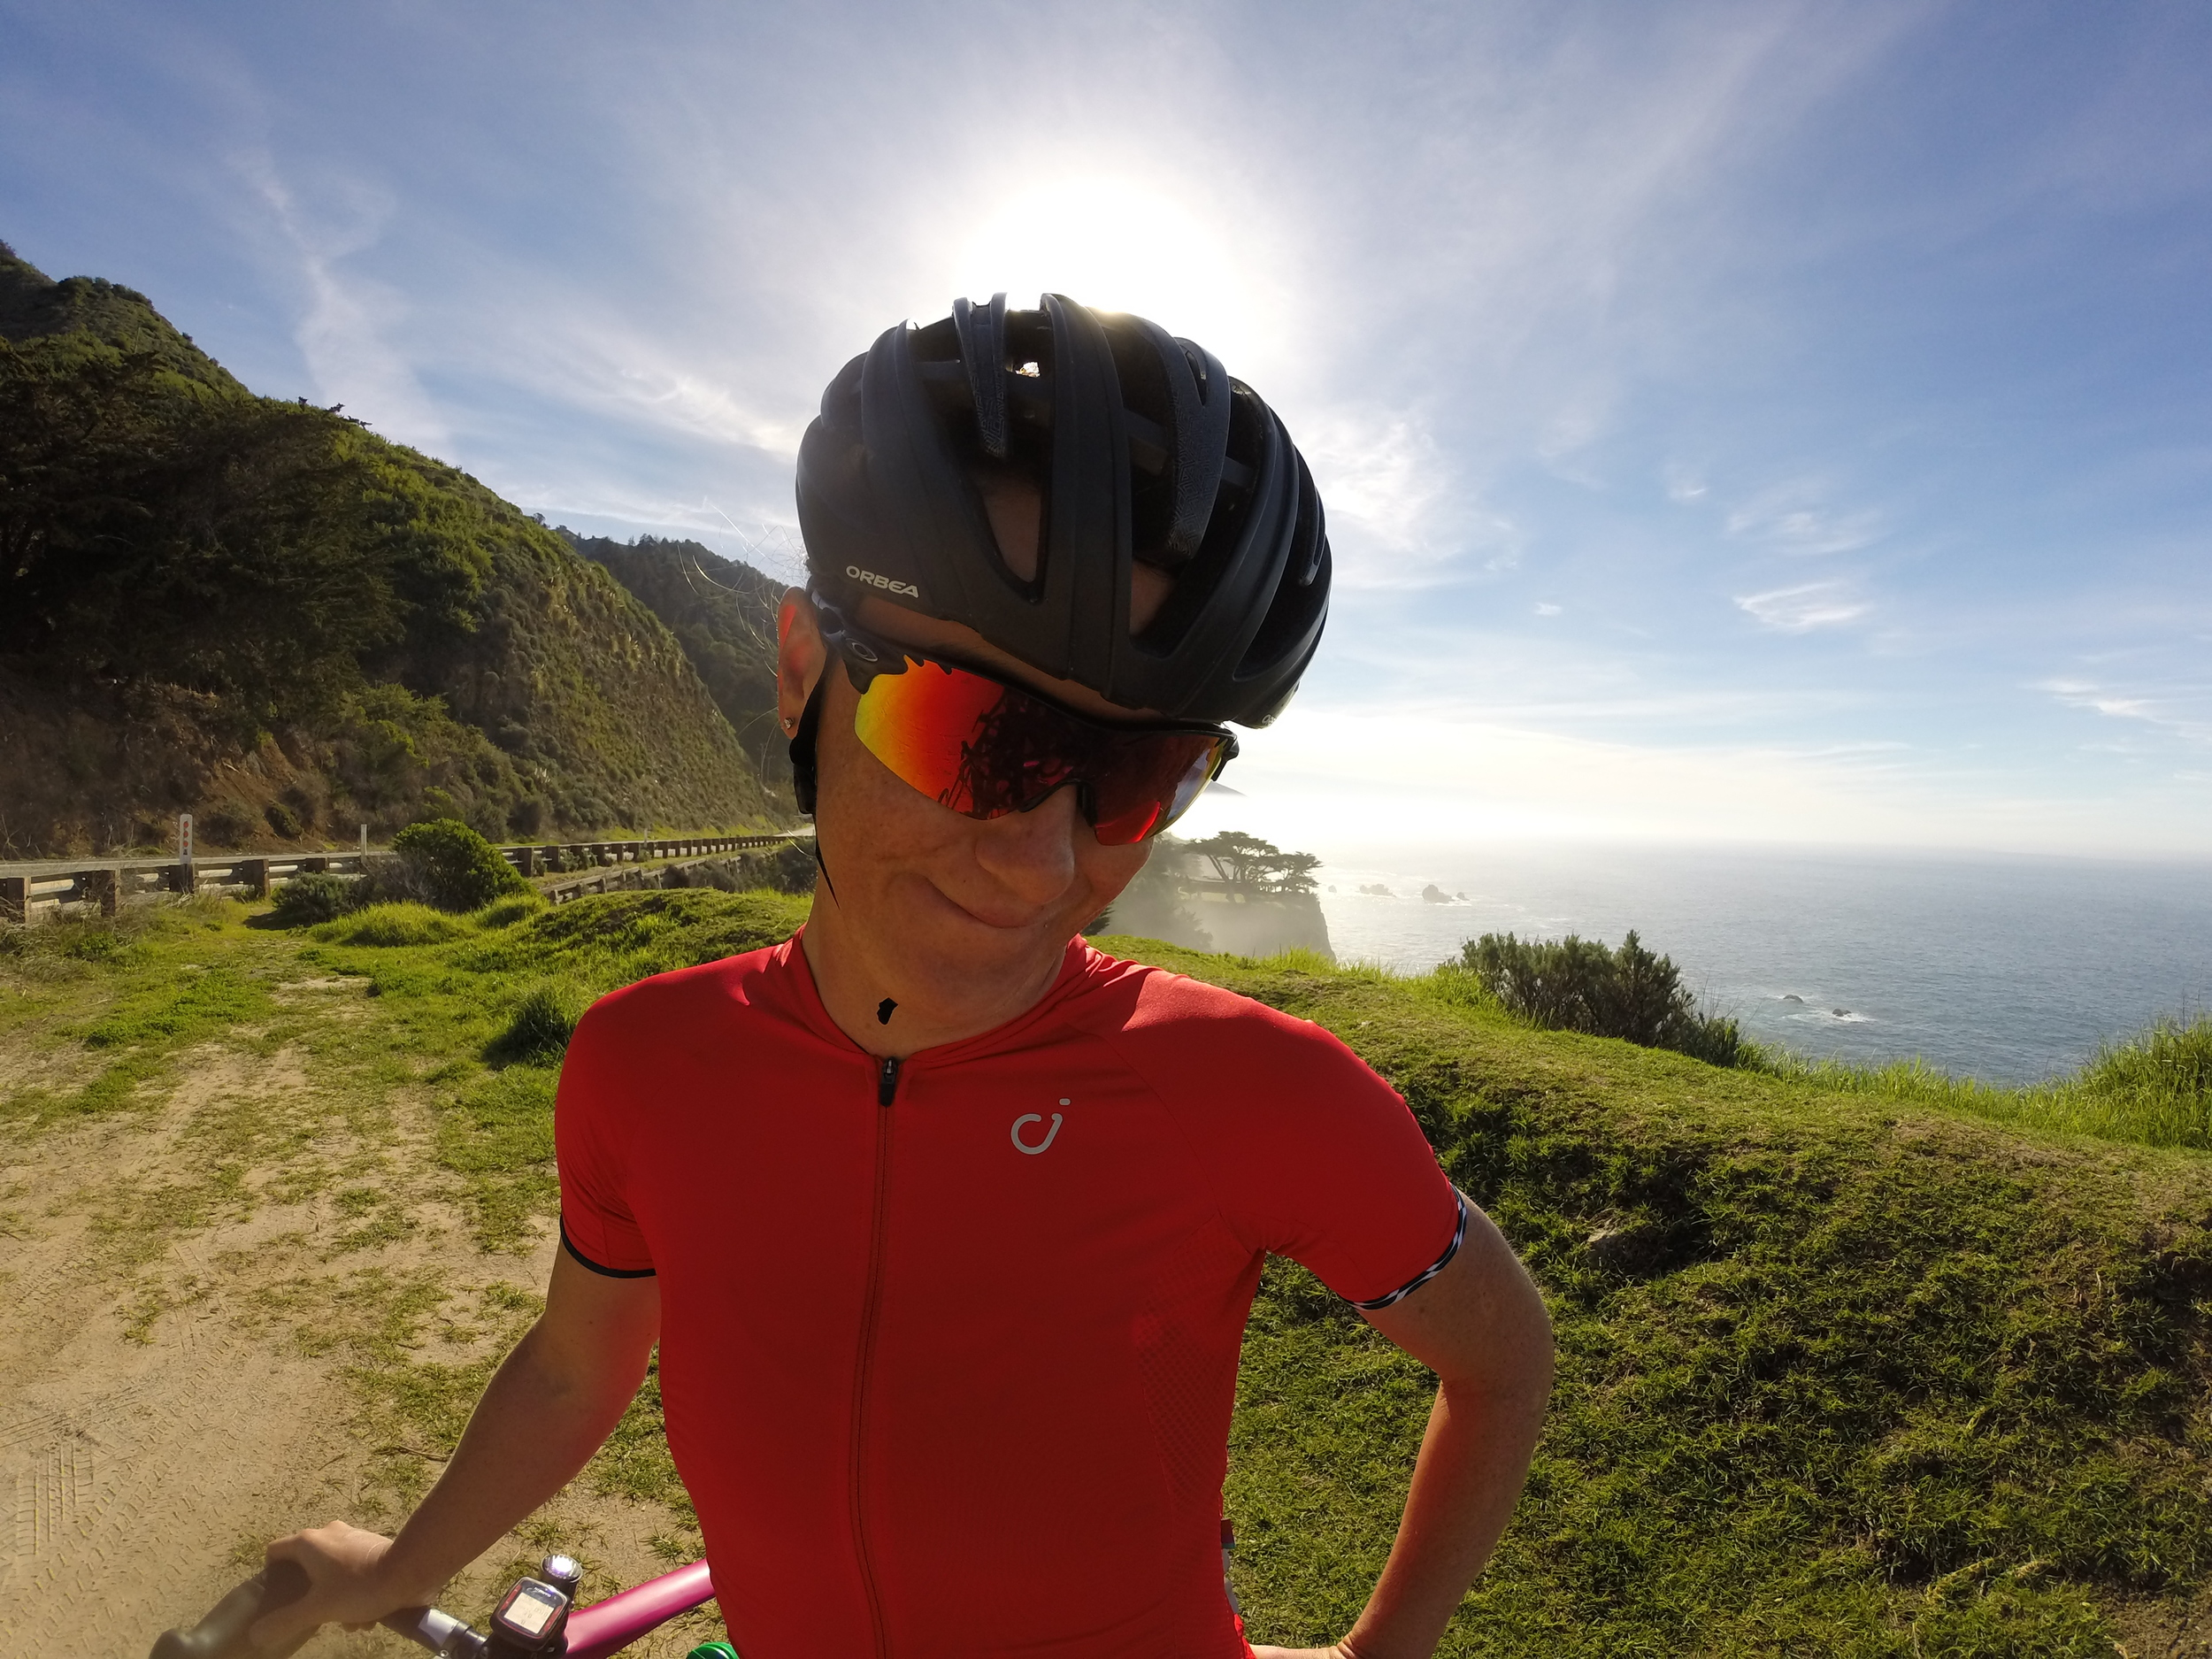 Look at the face, am I lucky or what!? Looking beautiful in the red classic jersey!:)